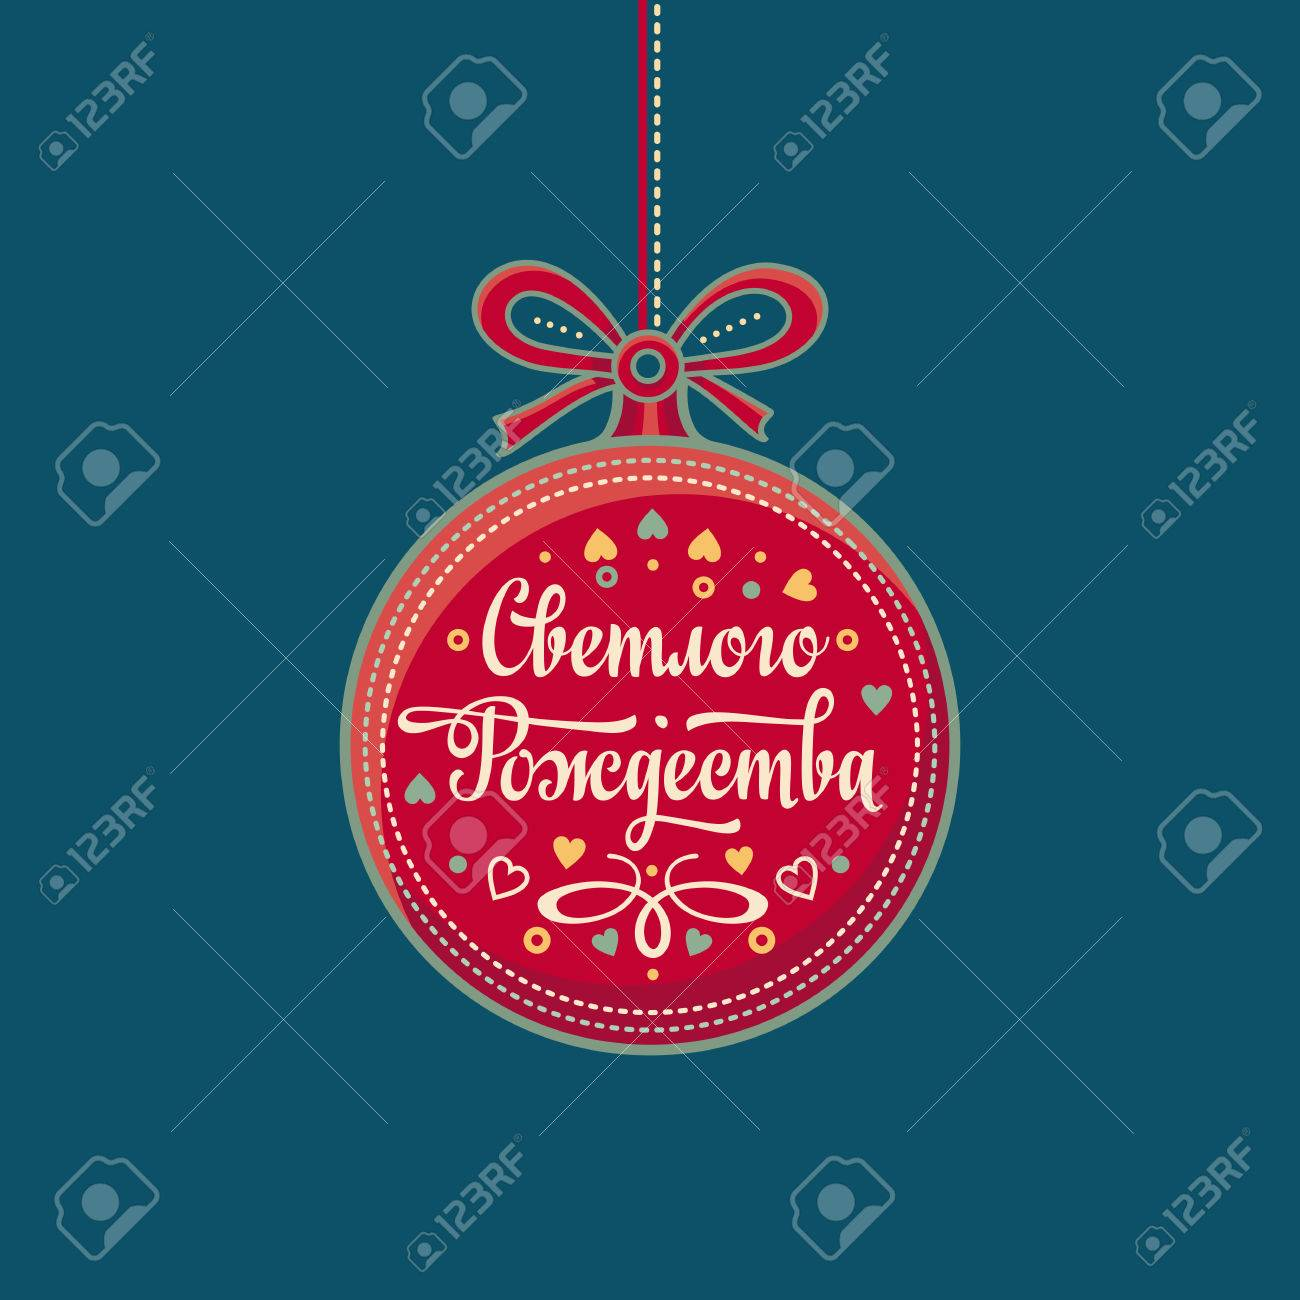 Russisch Frohe Weihnachten.Stock Photo